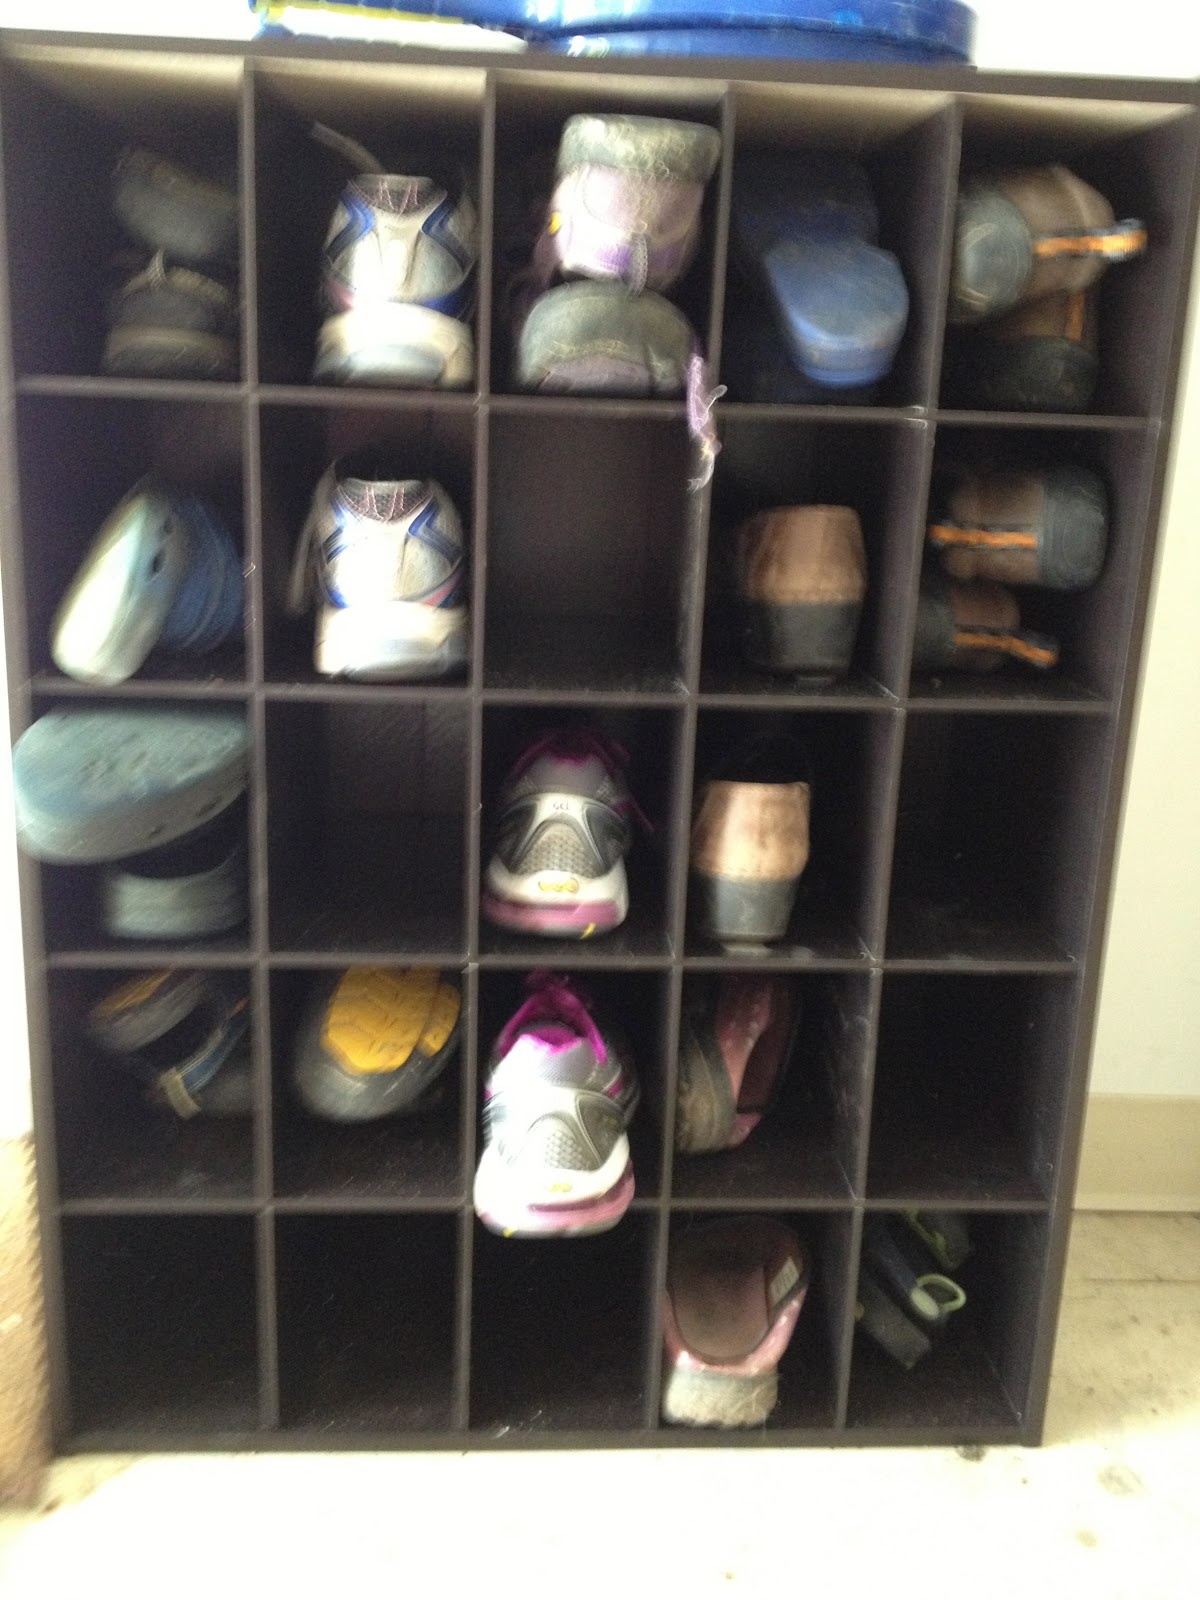 How To Organize Your Home And All Your Shoes With ClosetMaid 25 Shoe Storage